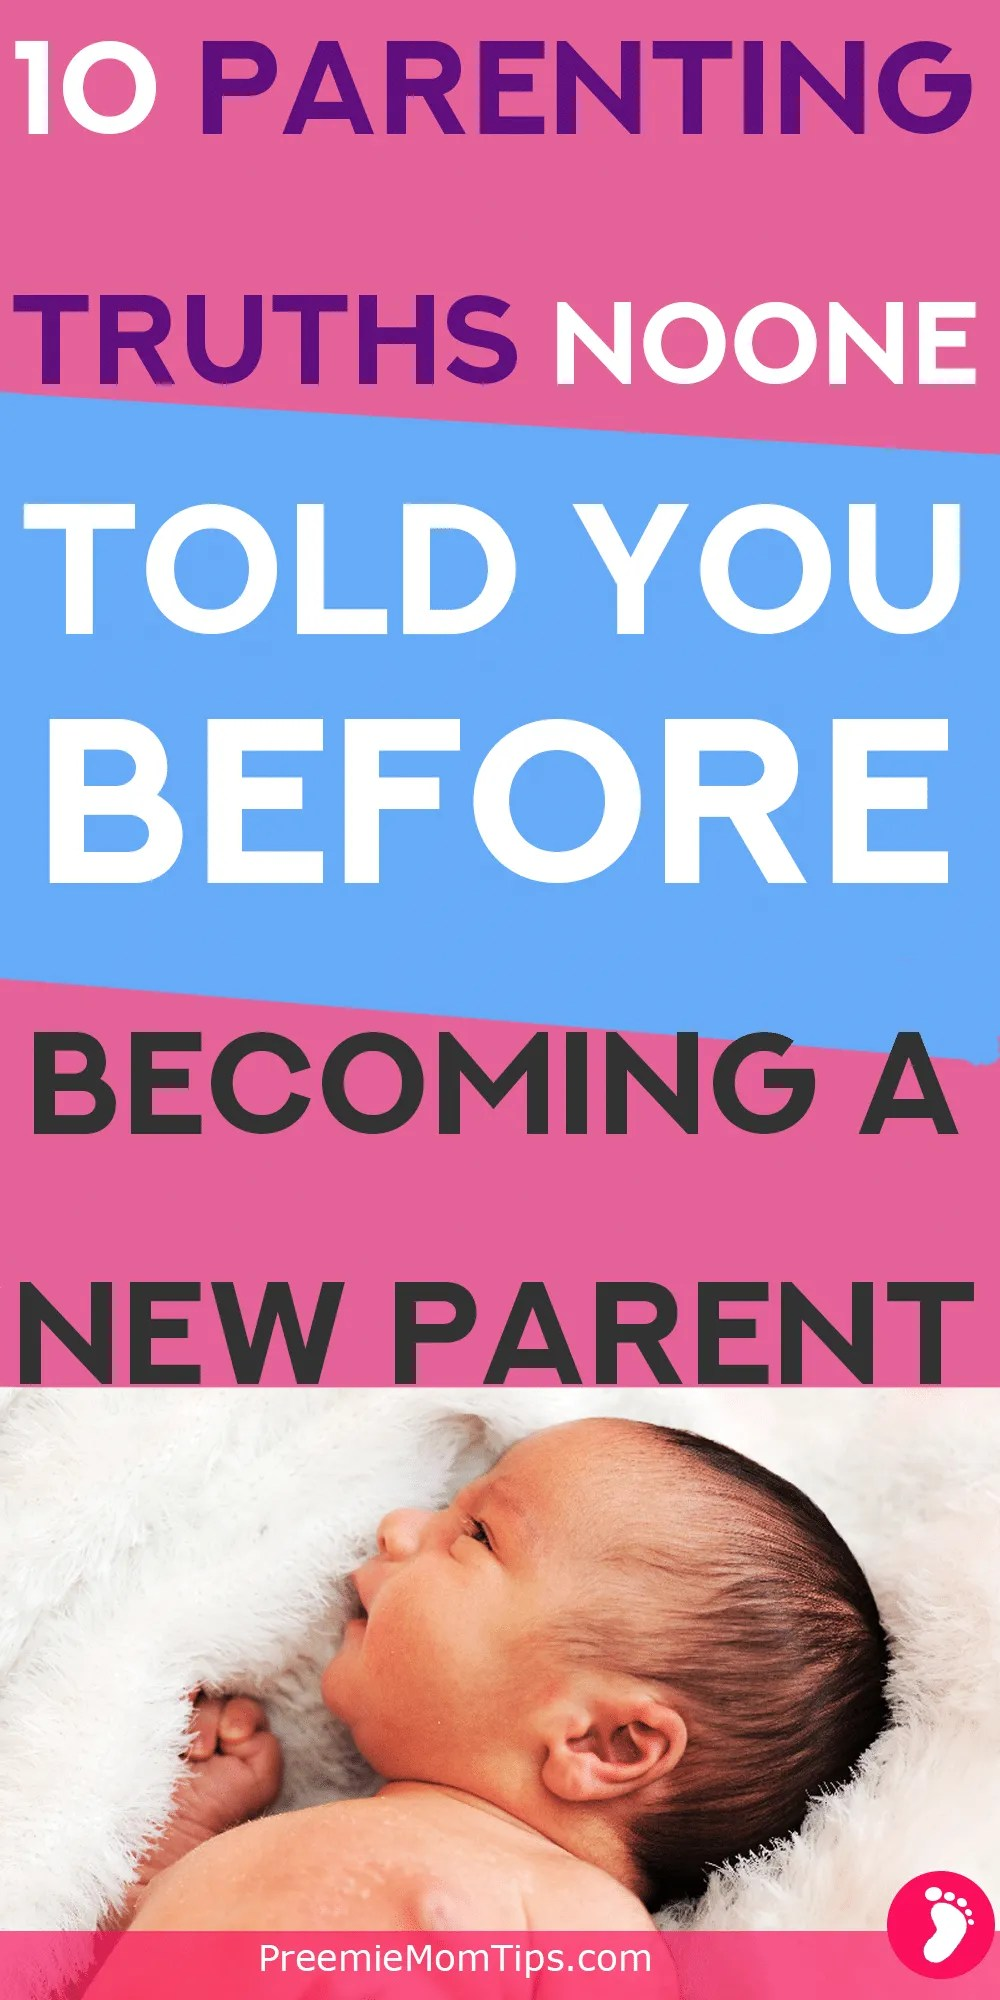 Aren't you tired of reading how hard being a first time mom is going to be? Here are 10 parenting truths about first time parenting beyond being sleep-deprived. Spoiler alert: you'll love being a new mom!